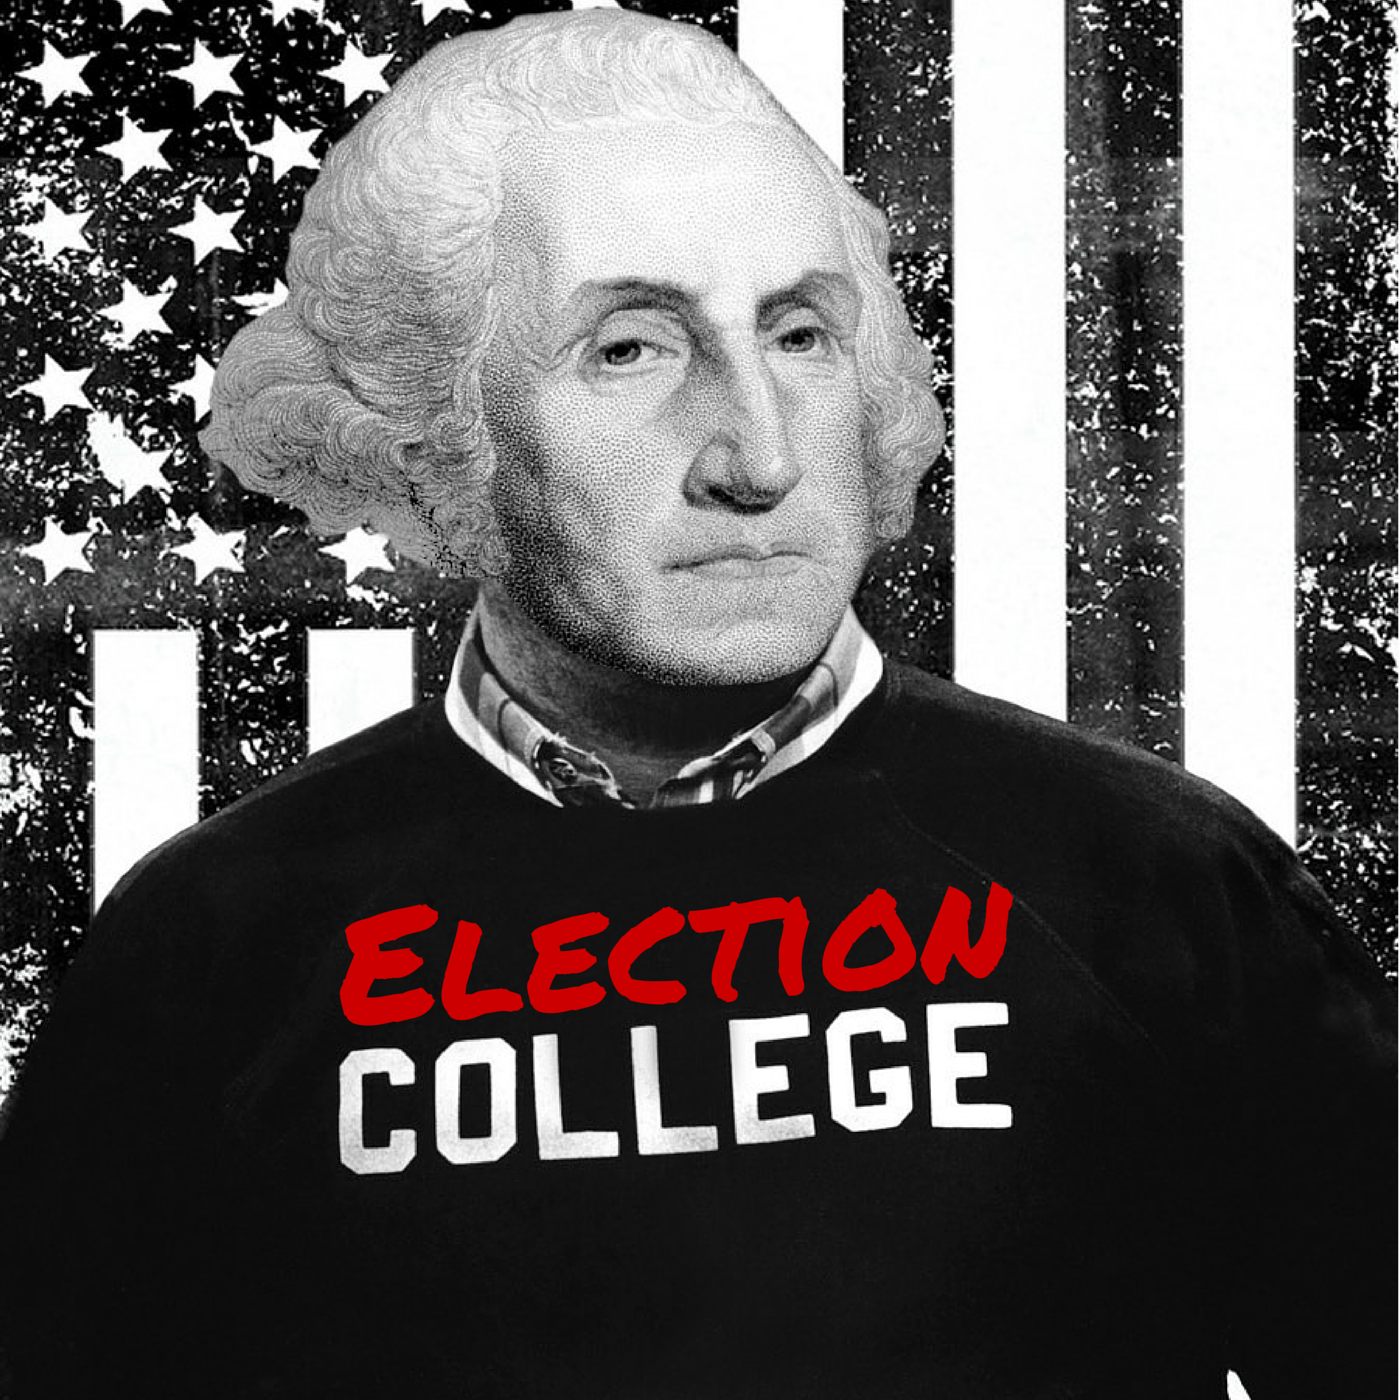 Inauguration Extravaganza | Episode #160 | Election College: United States Presidential Election History